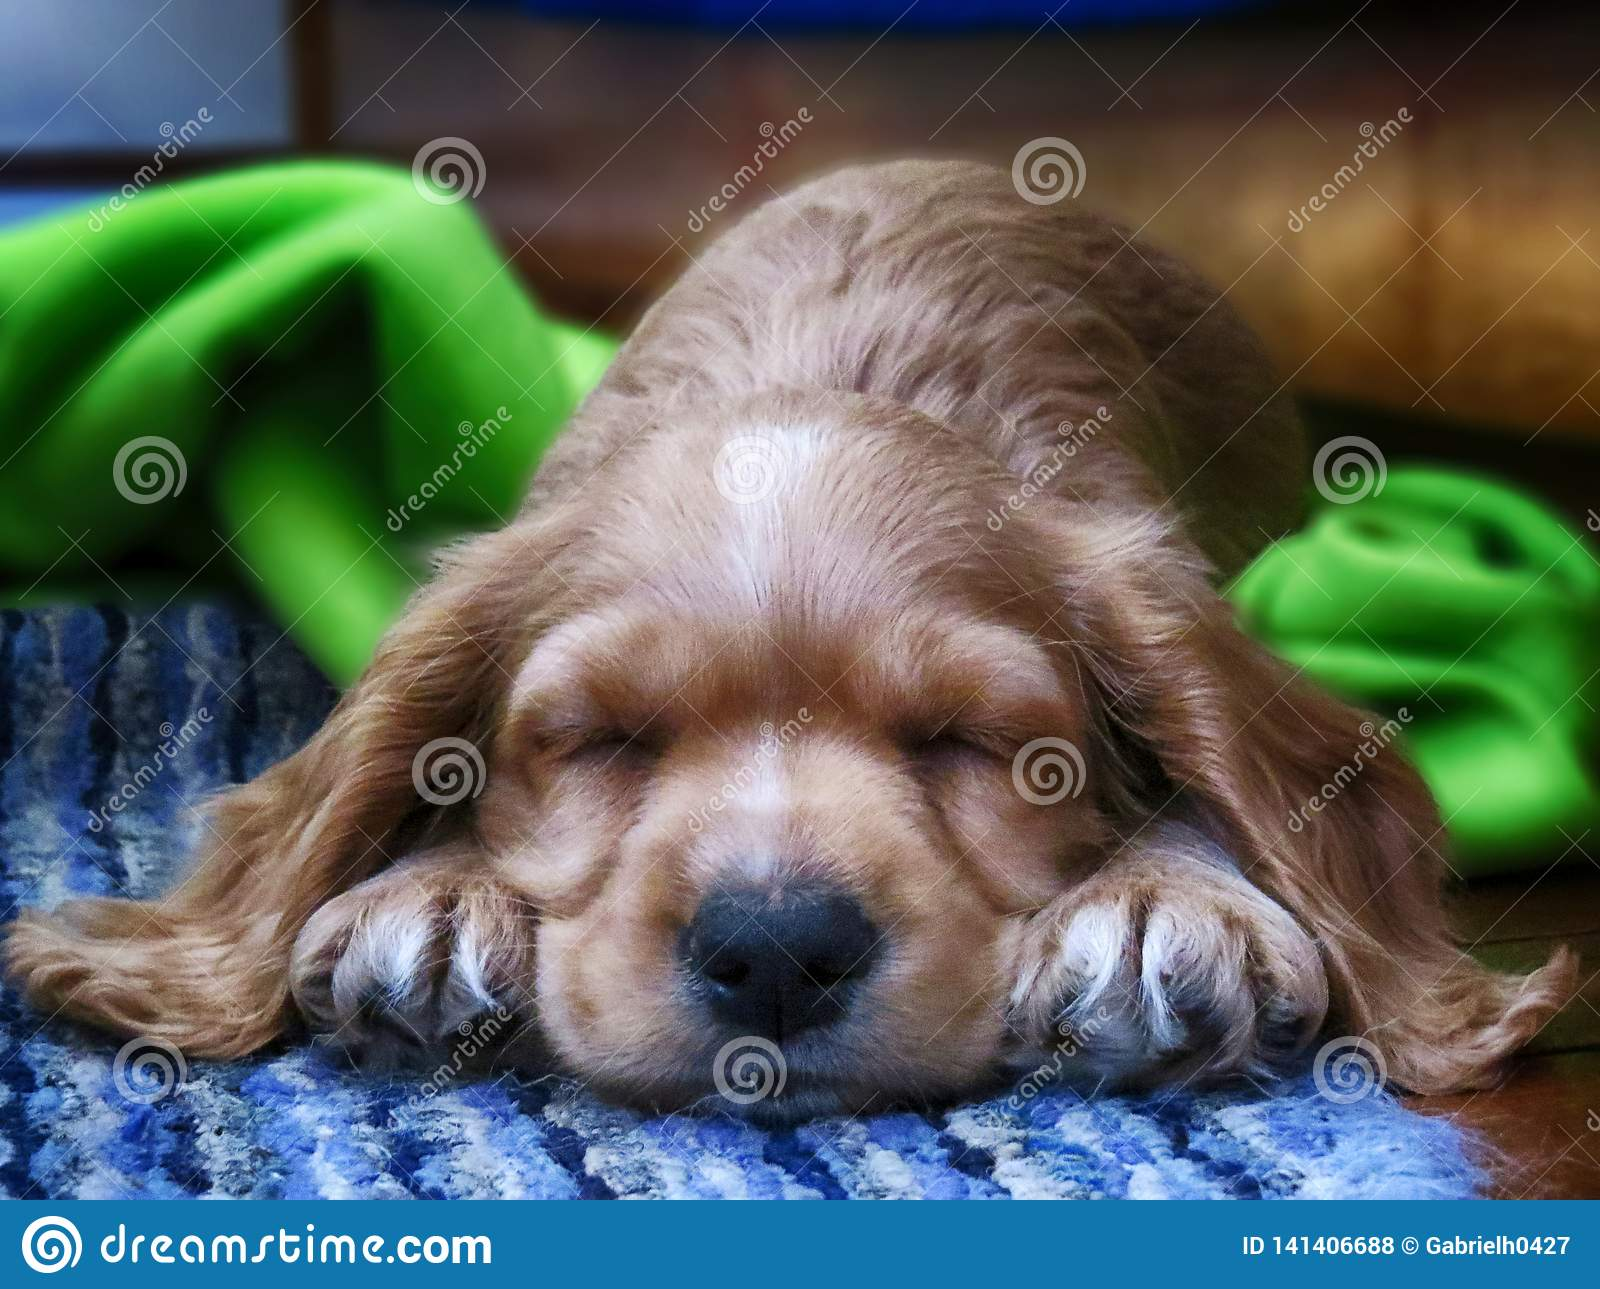 Little gold cocker spaniel dog sleeping on a blue carpet